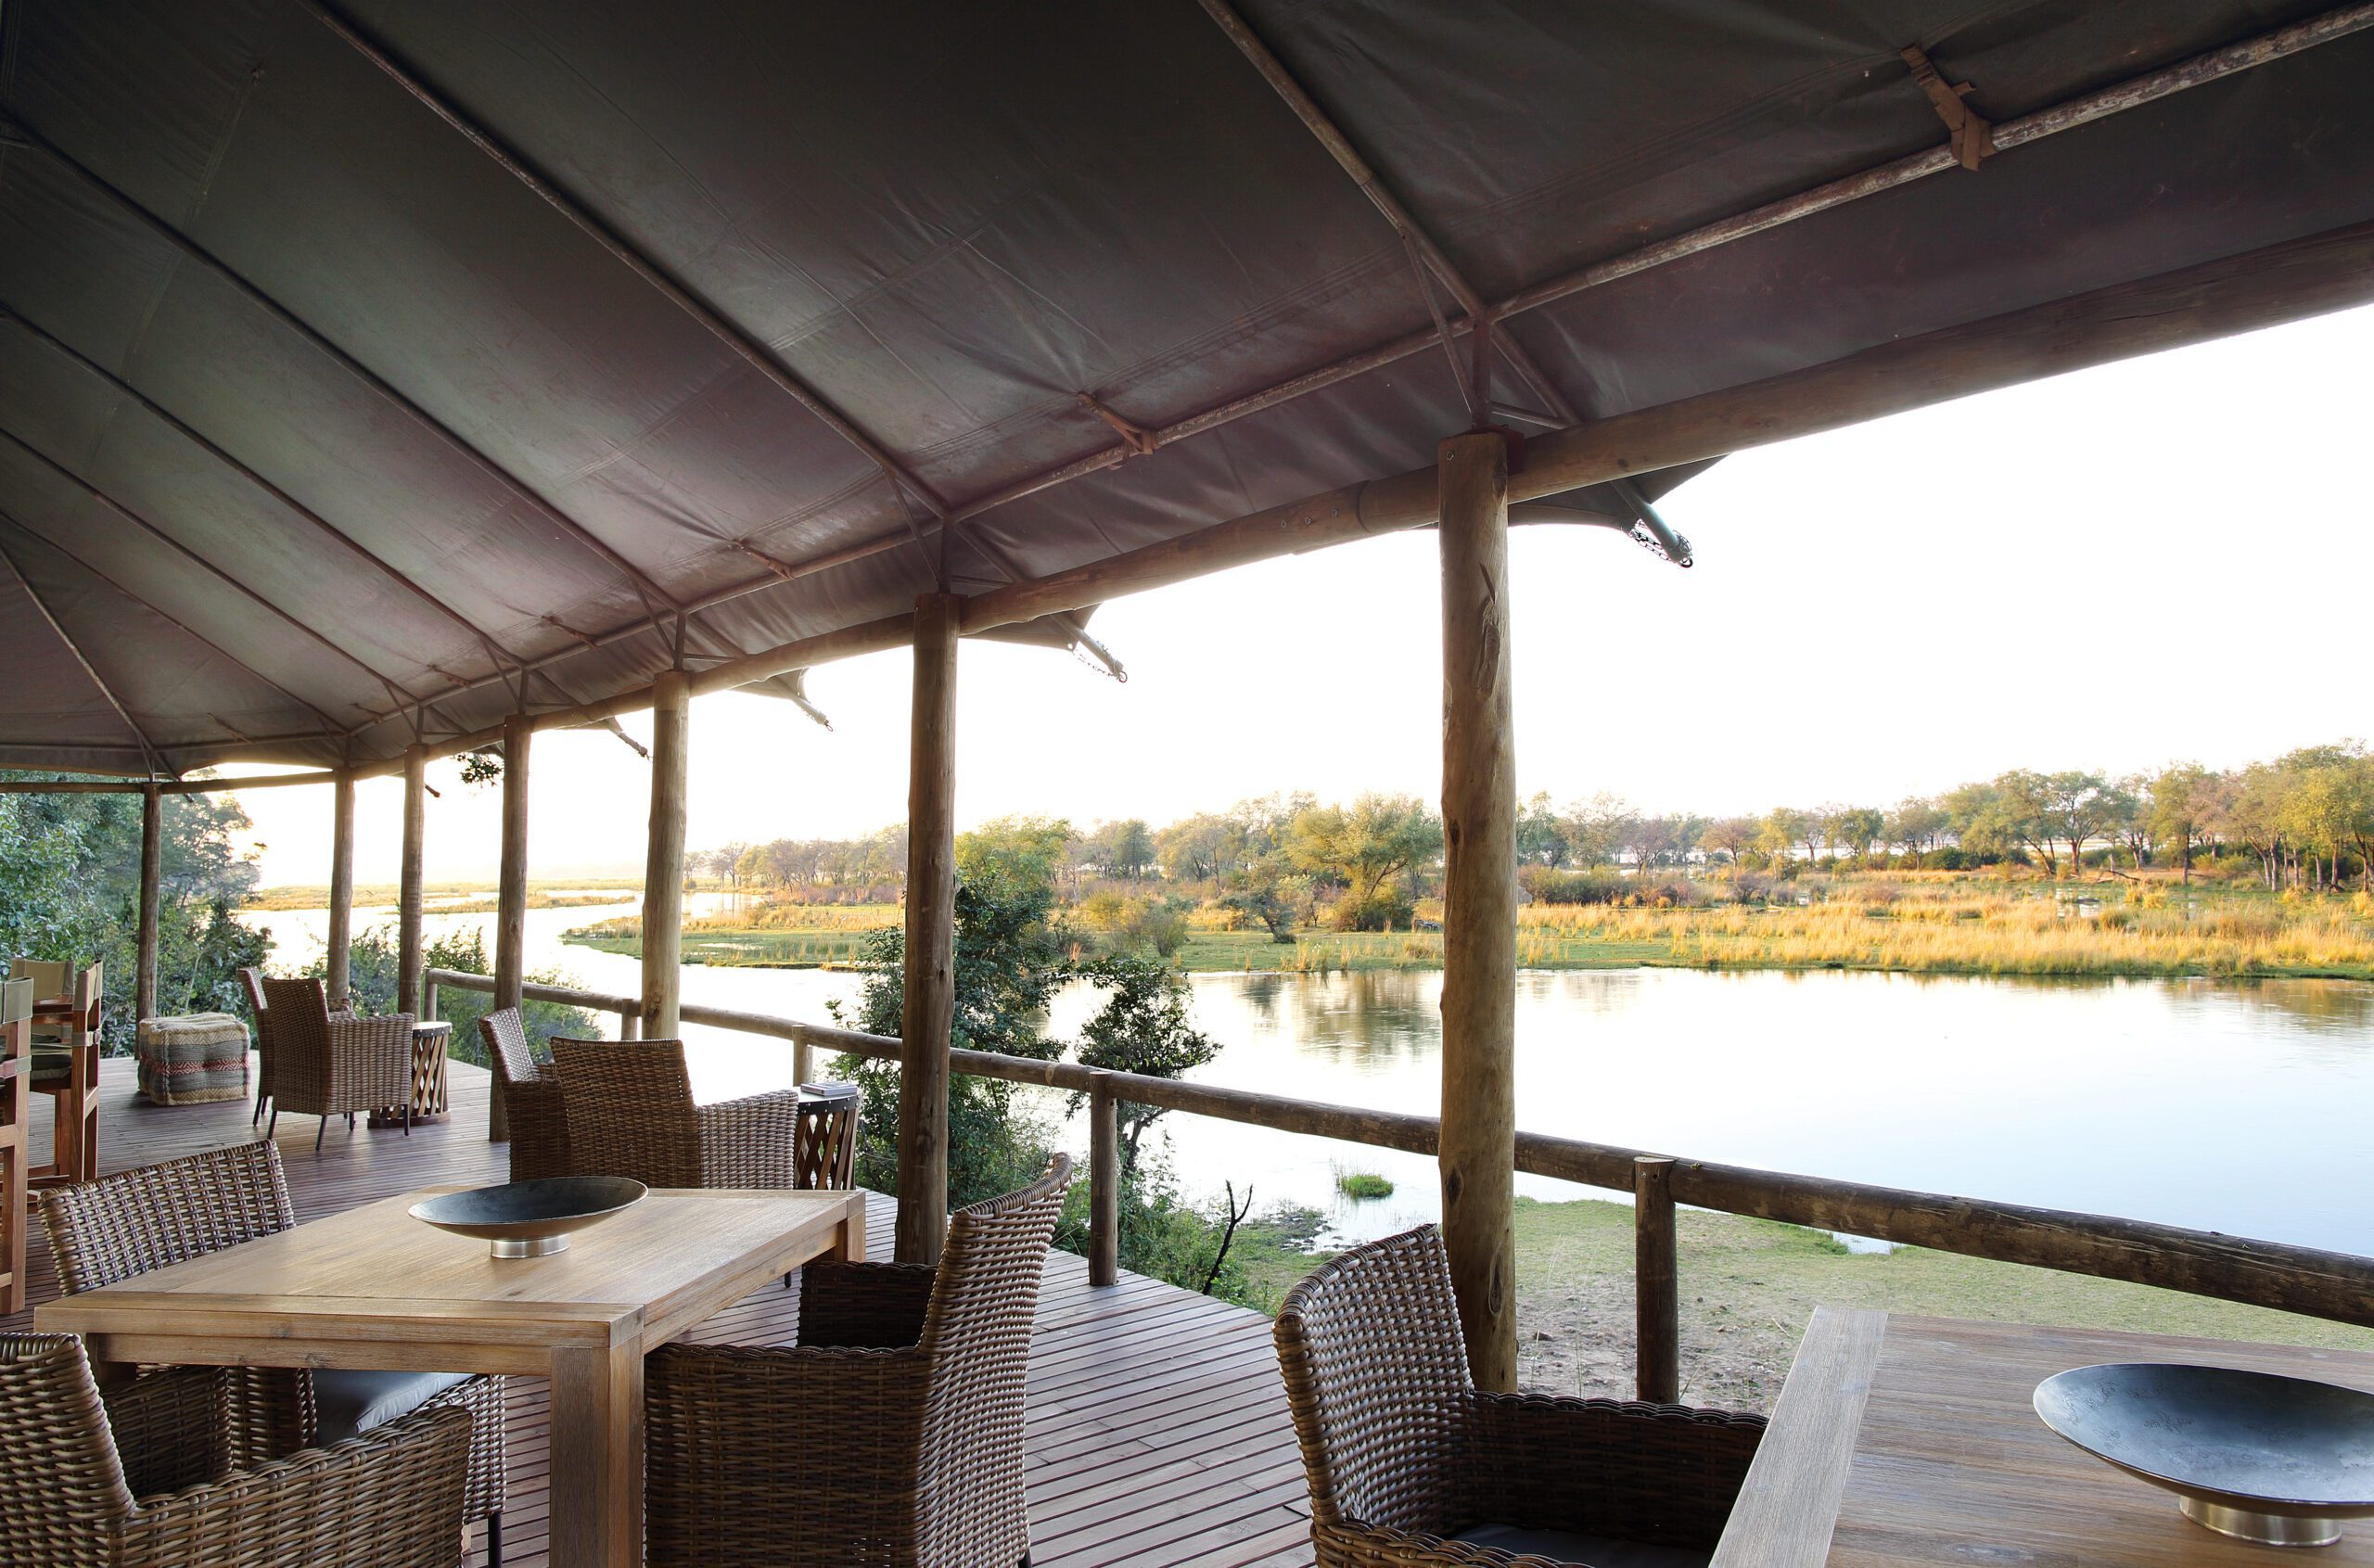 dining area at Amanzi camp in the Lower Zambezi looking out on the river.